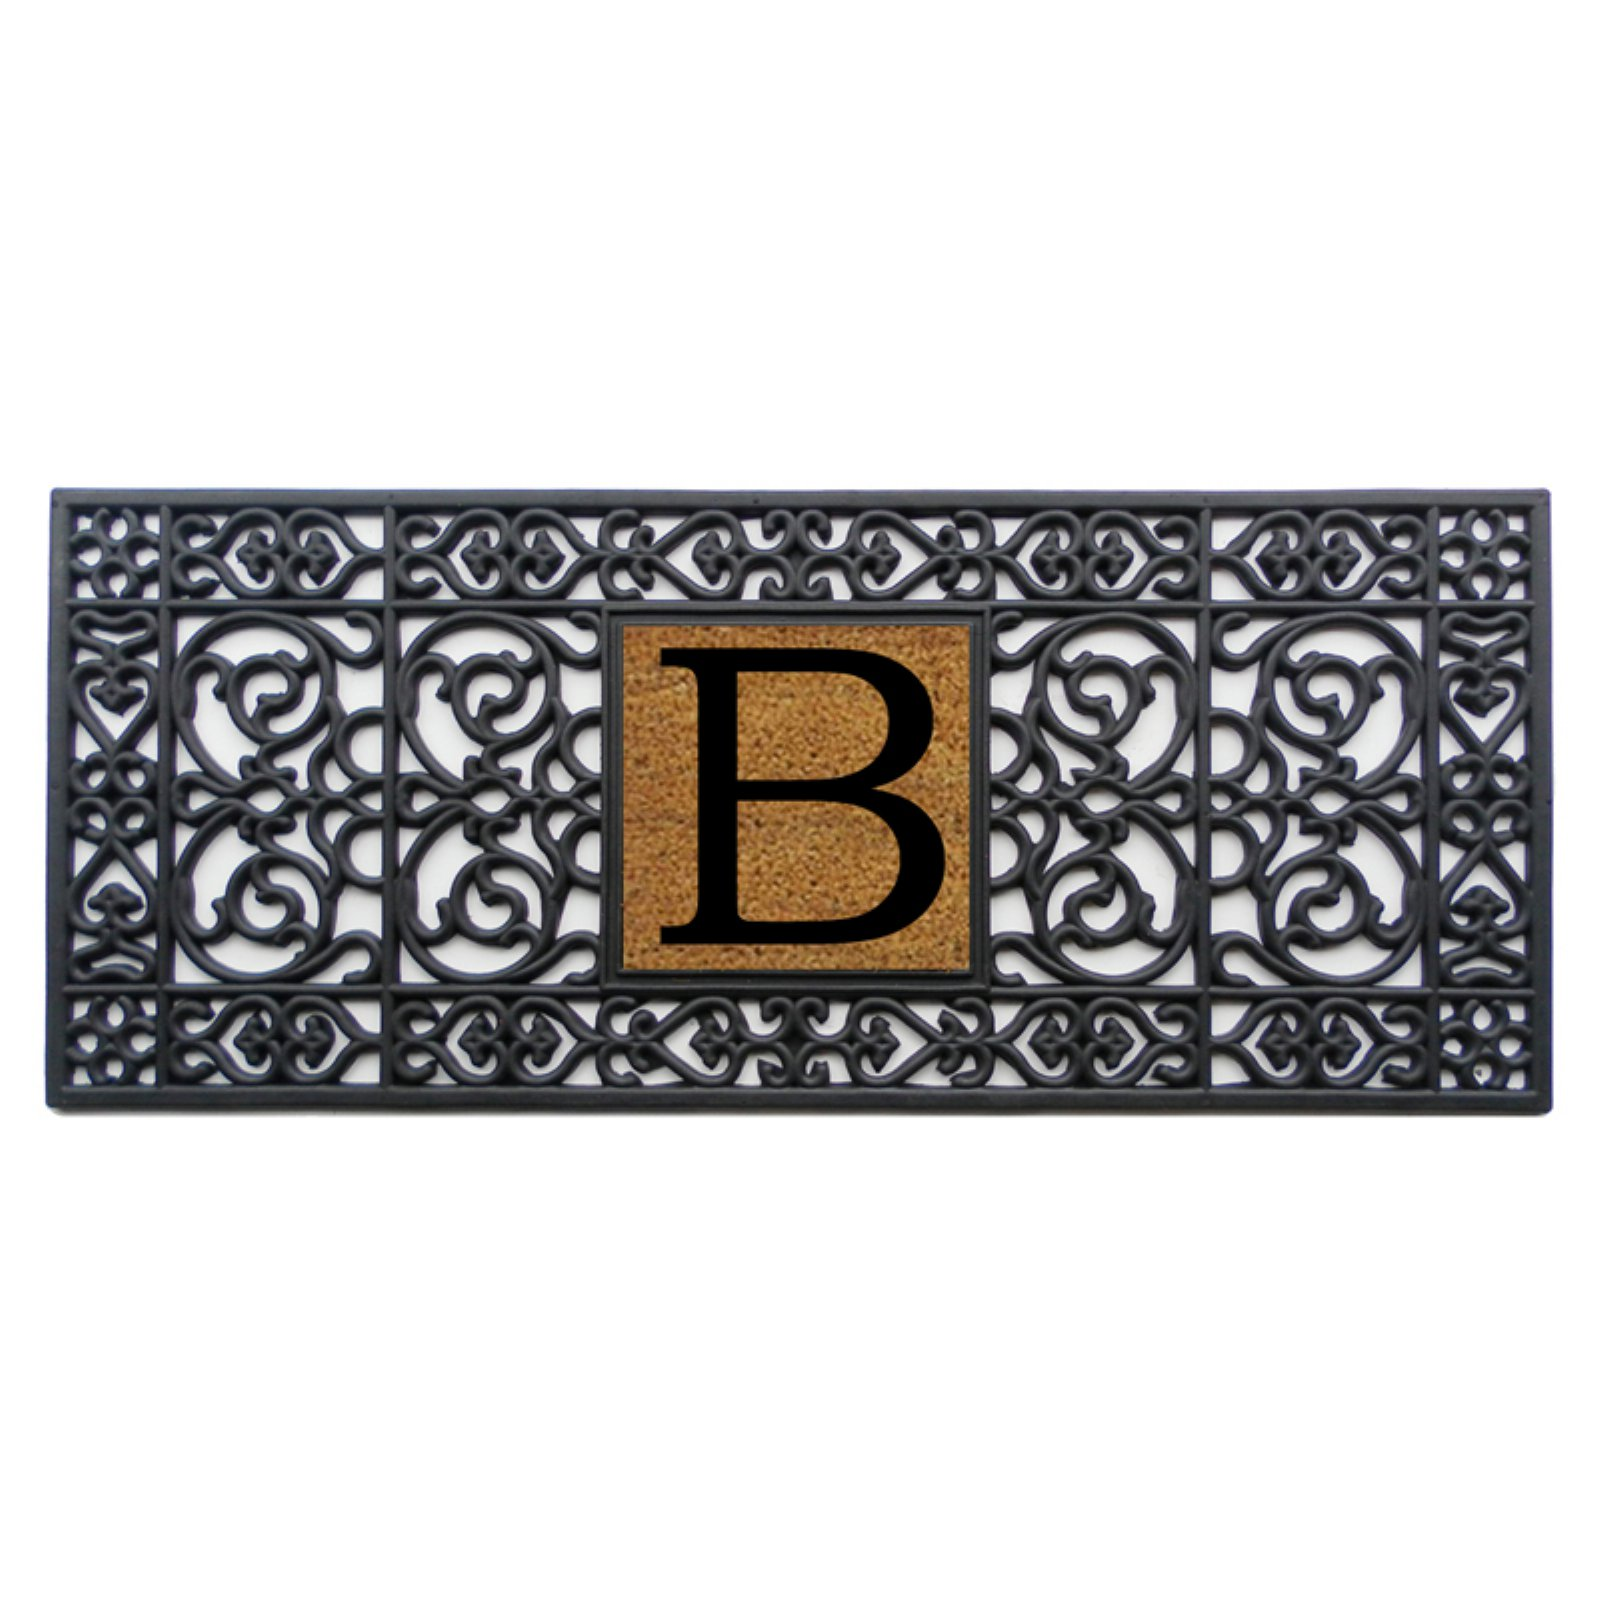 Home and More 17 x 41 Monogrammed Doormat by Home and More Inc